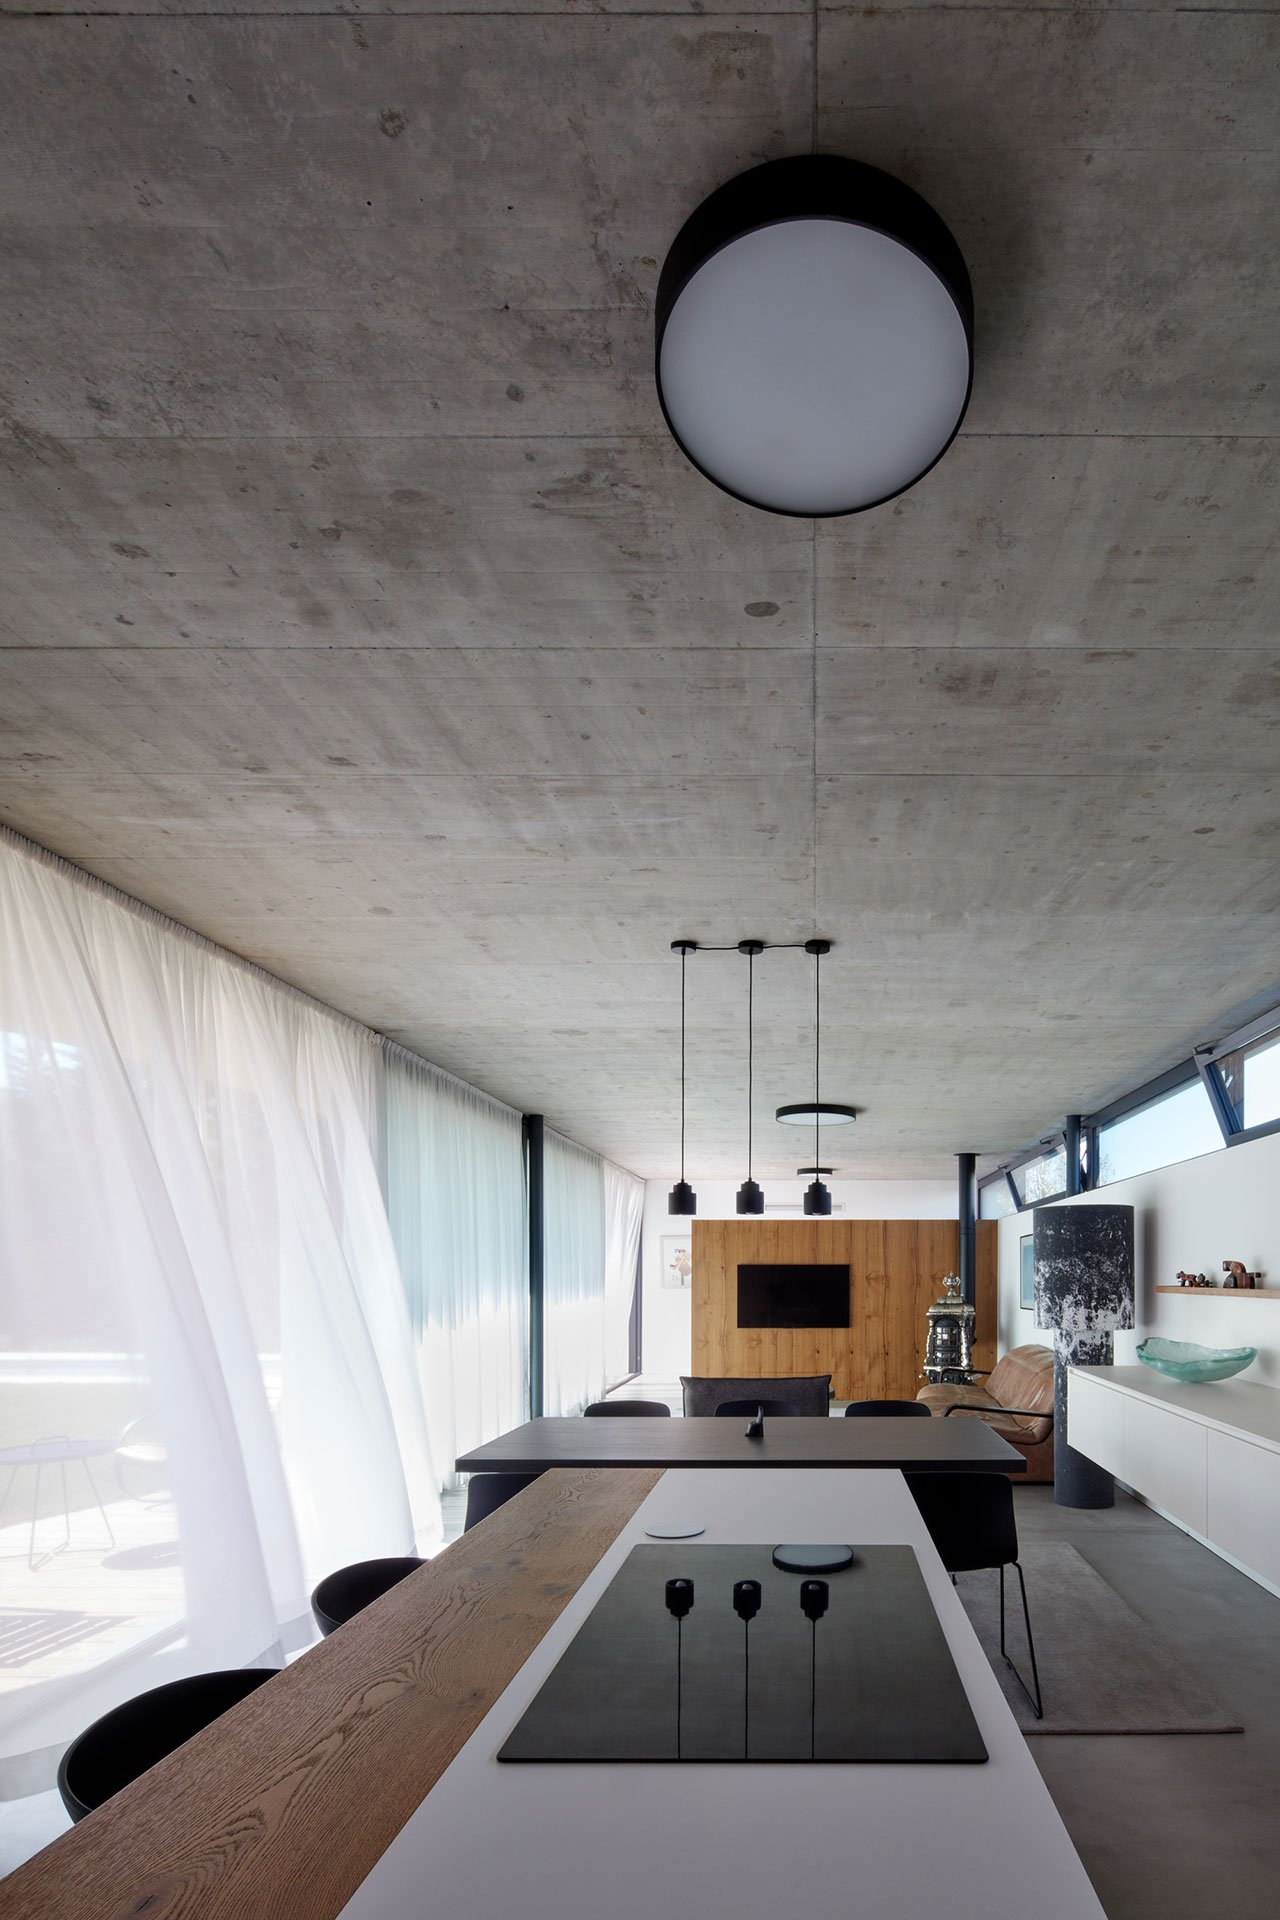 A Minimalist Bratislava Home with Distinctive Black Counter Stools_1